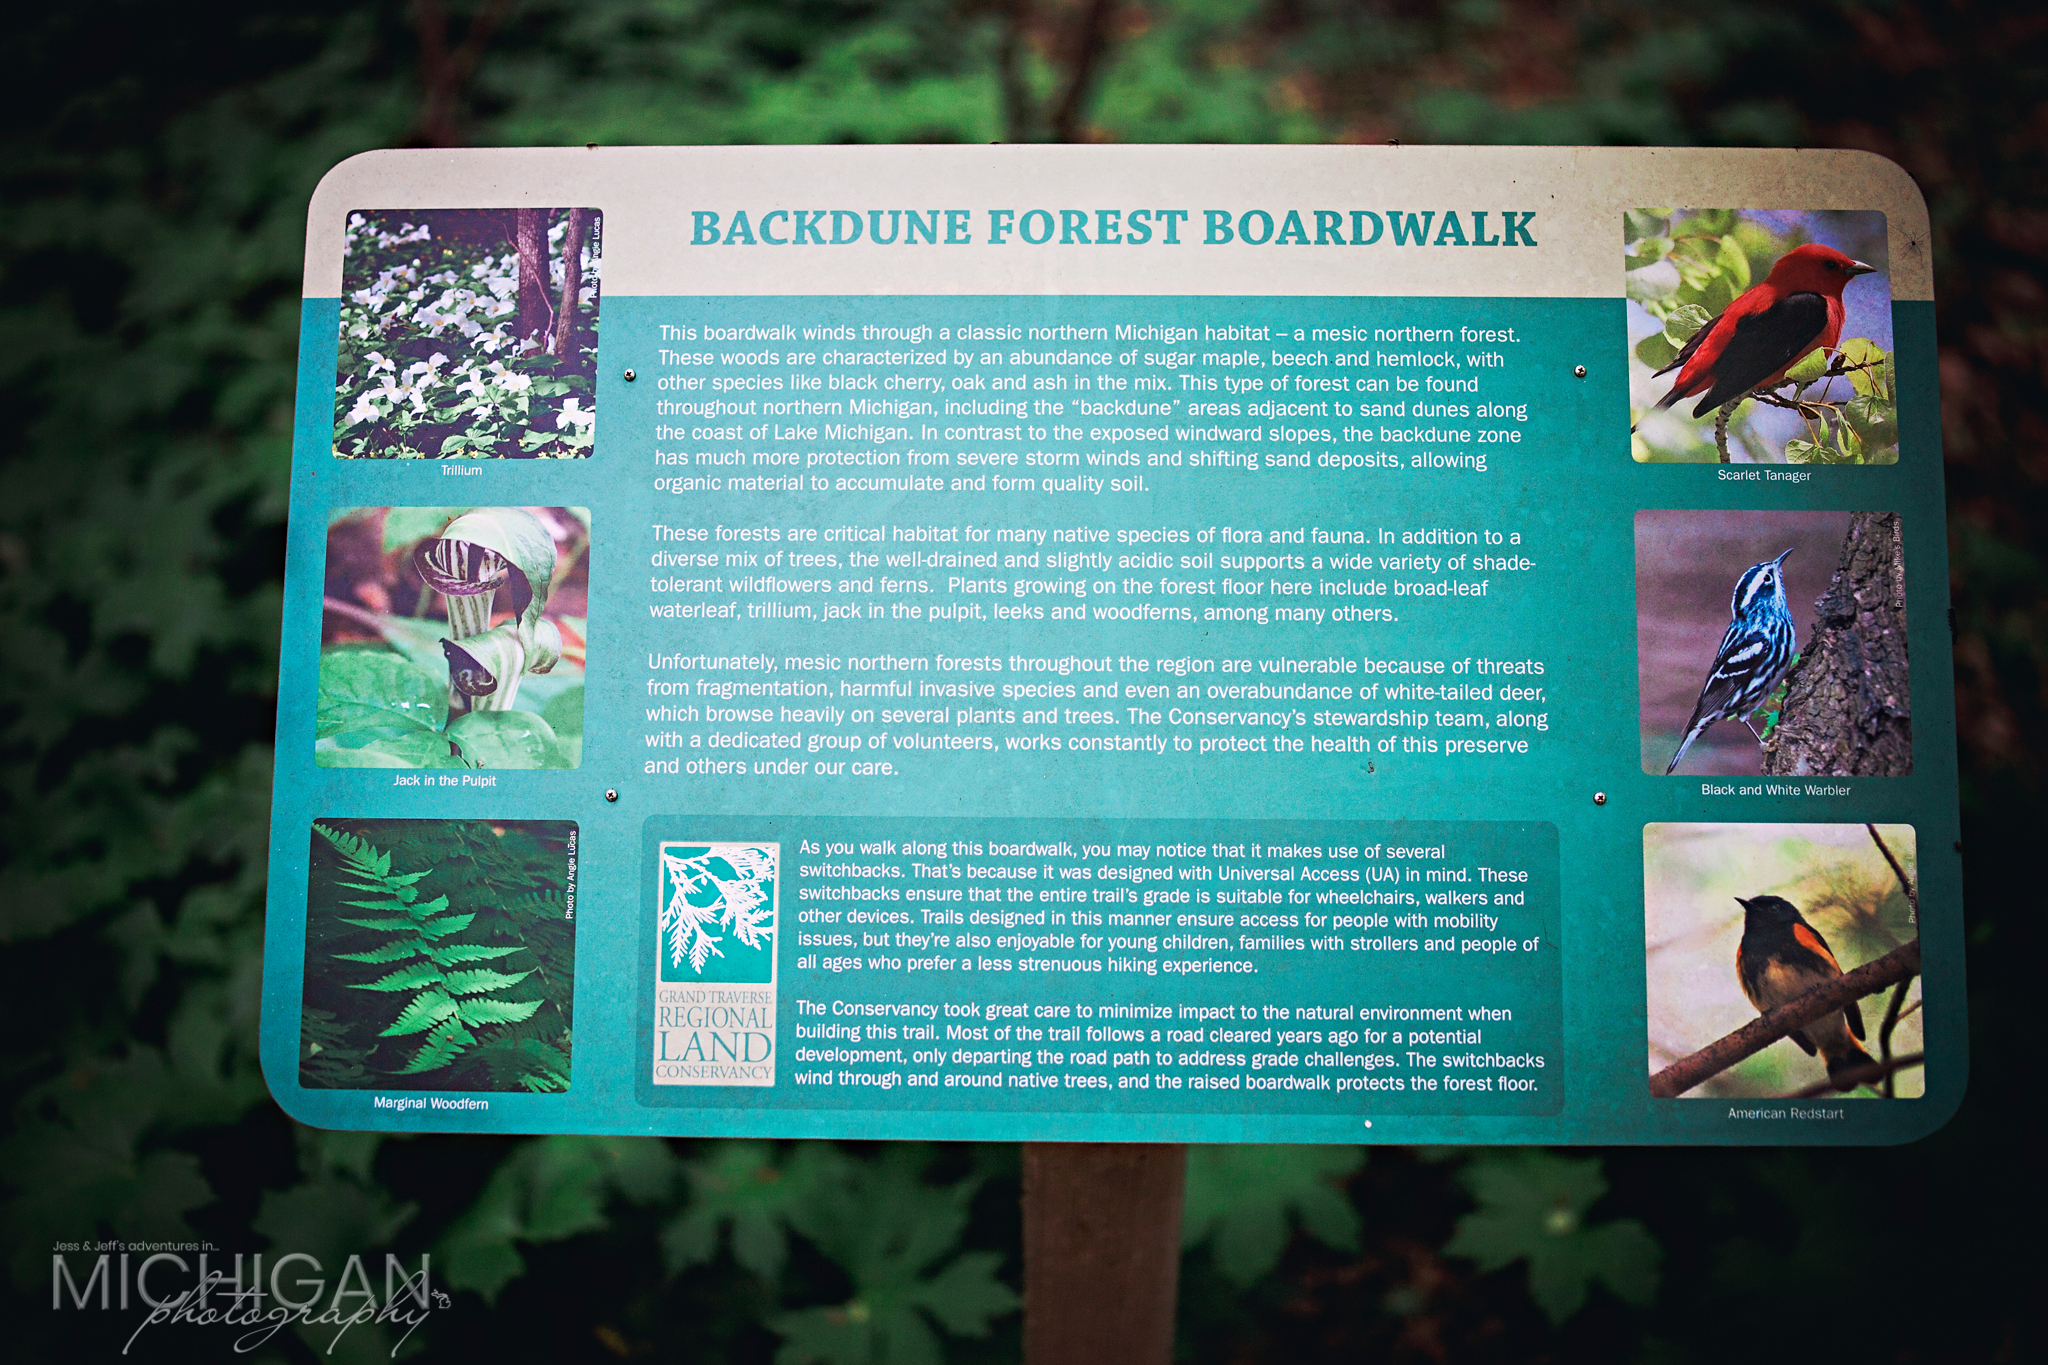 An informative sign on the Overlook Trail